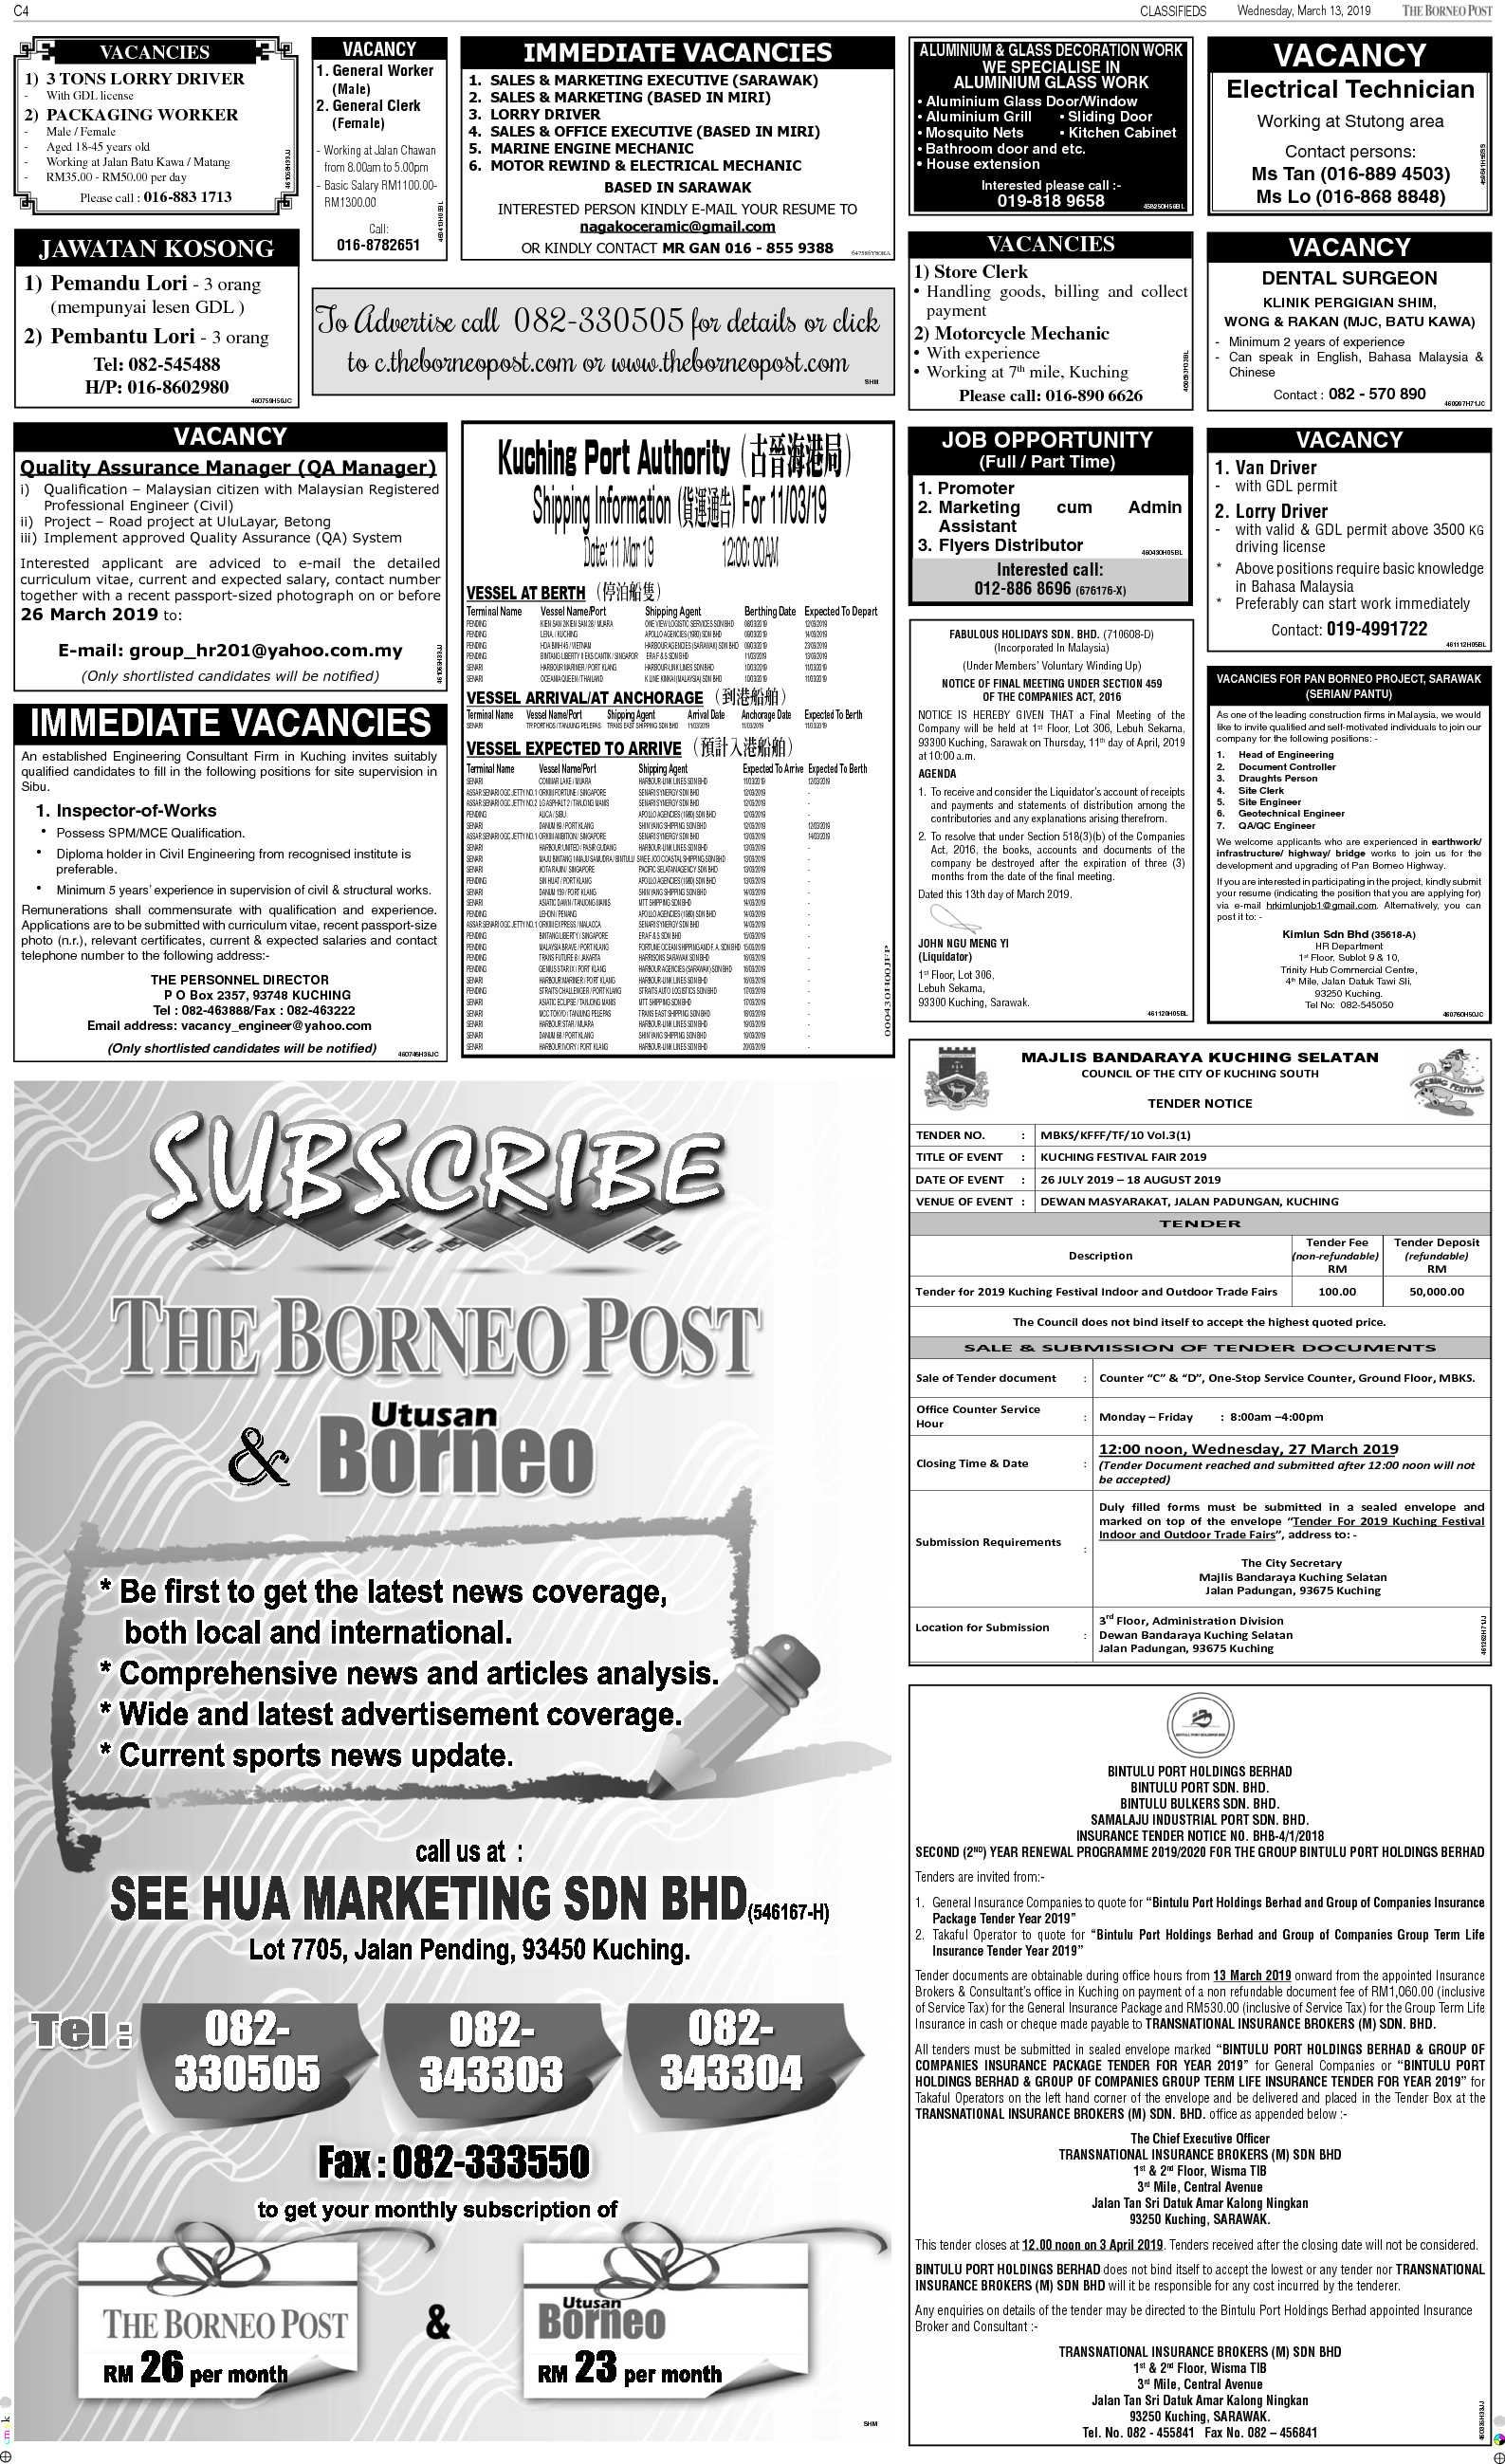 Wednesday - Mar 13 | The Borneo Post Classifieds